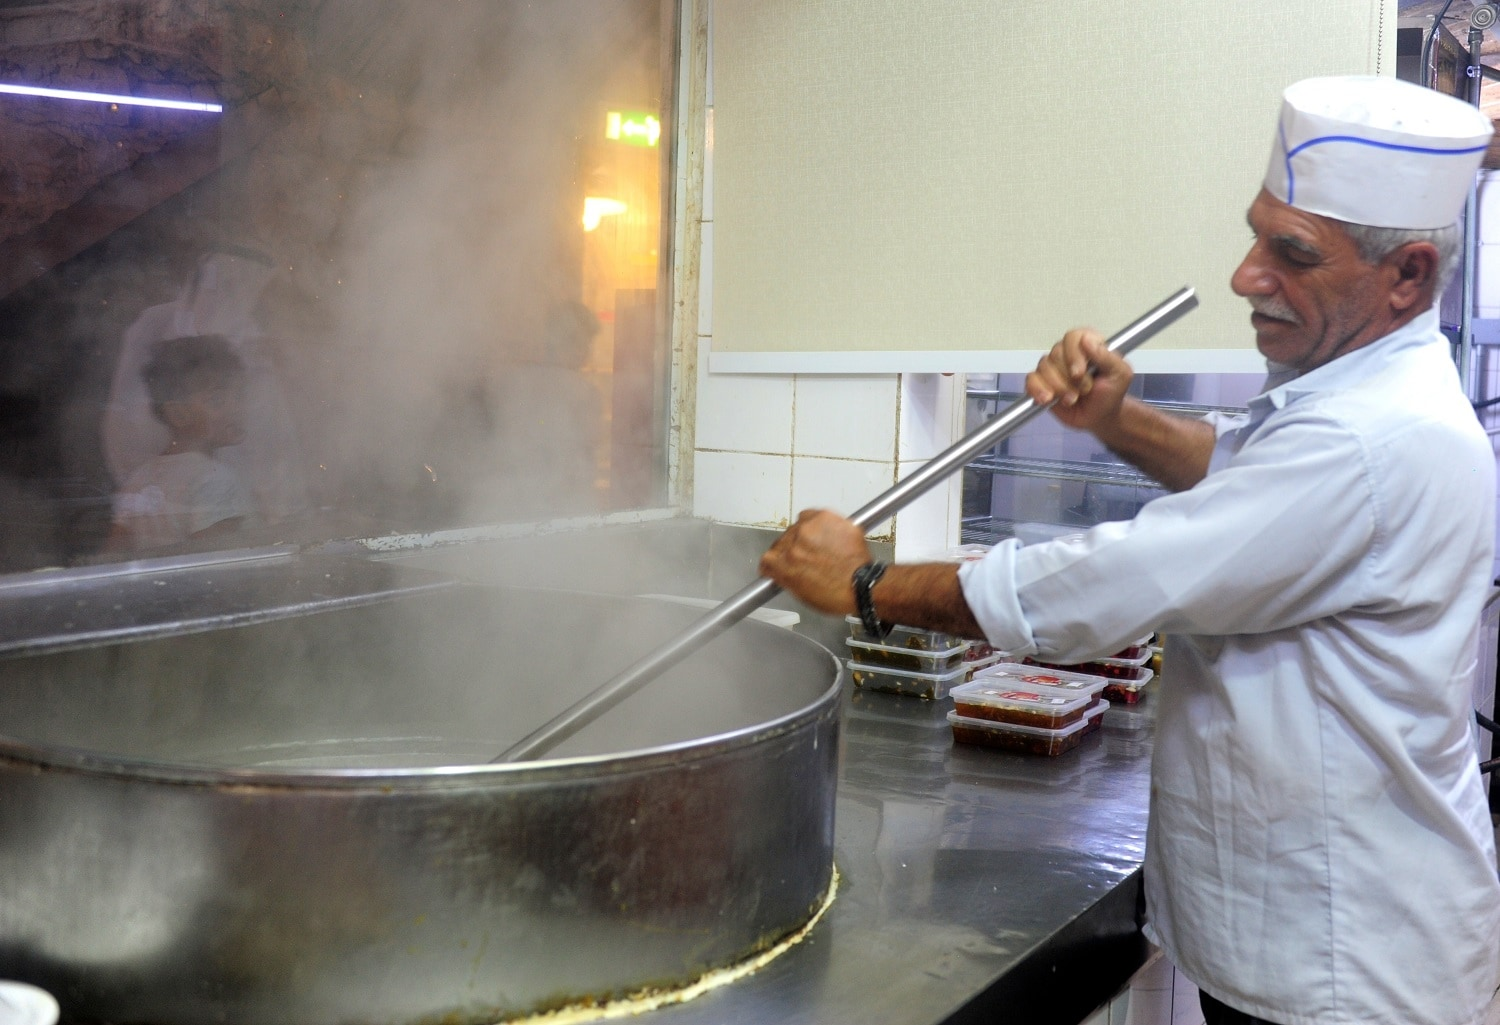 Halwa being made in Doha's Souq Waqif